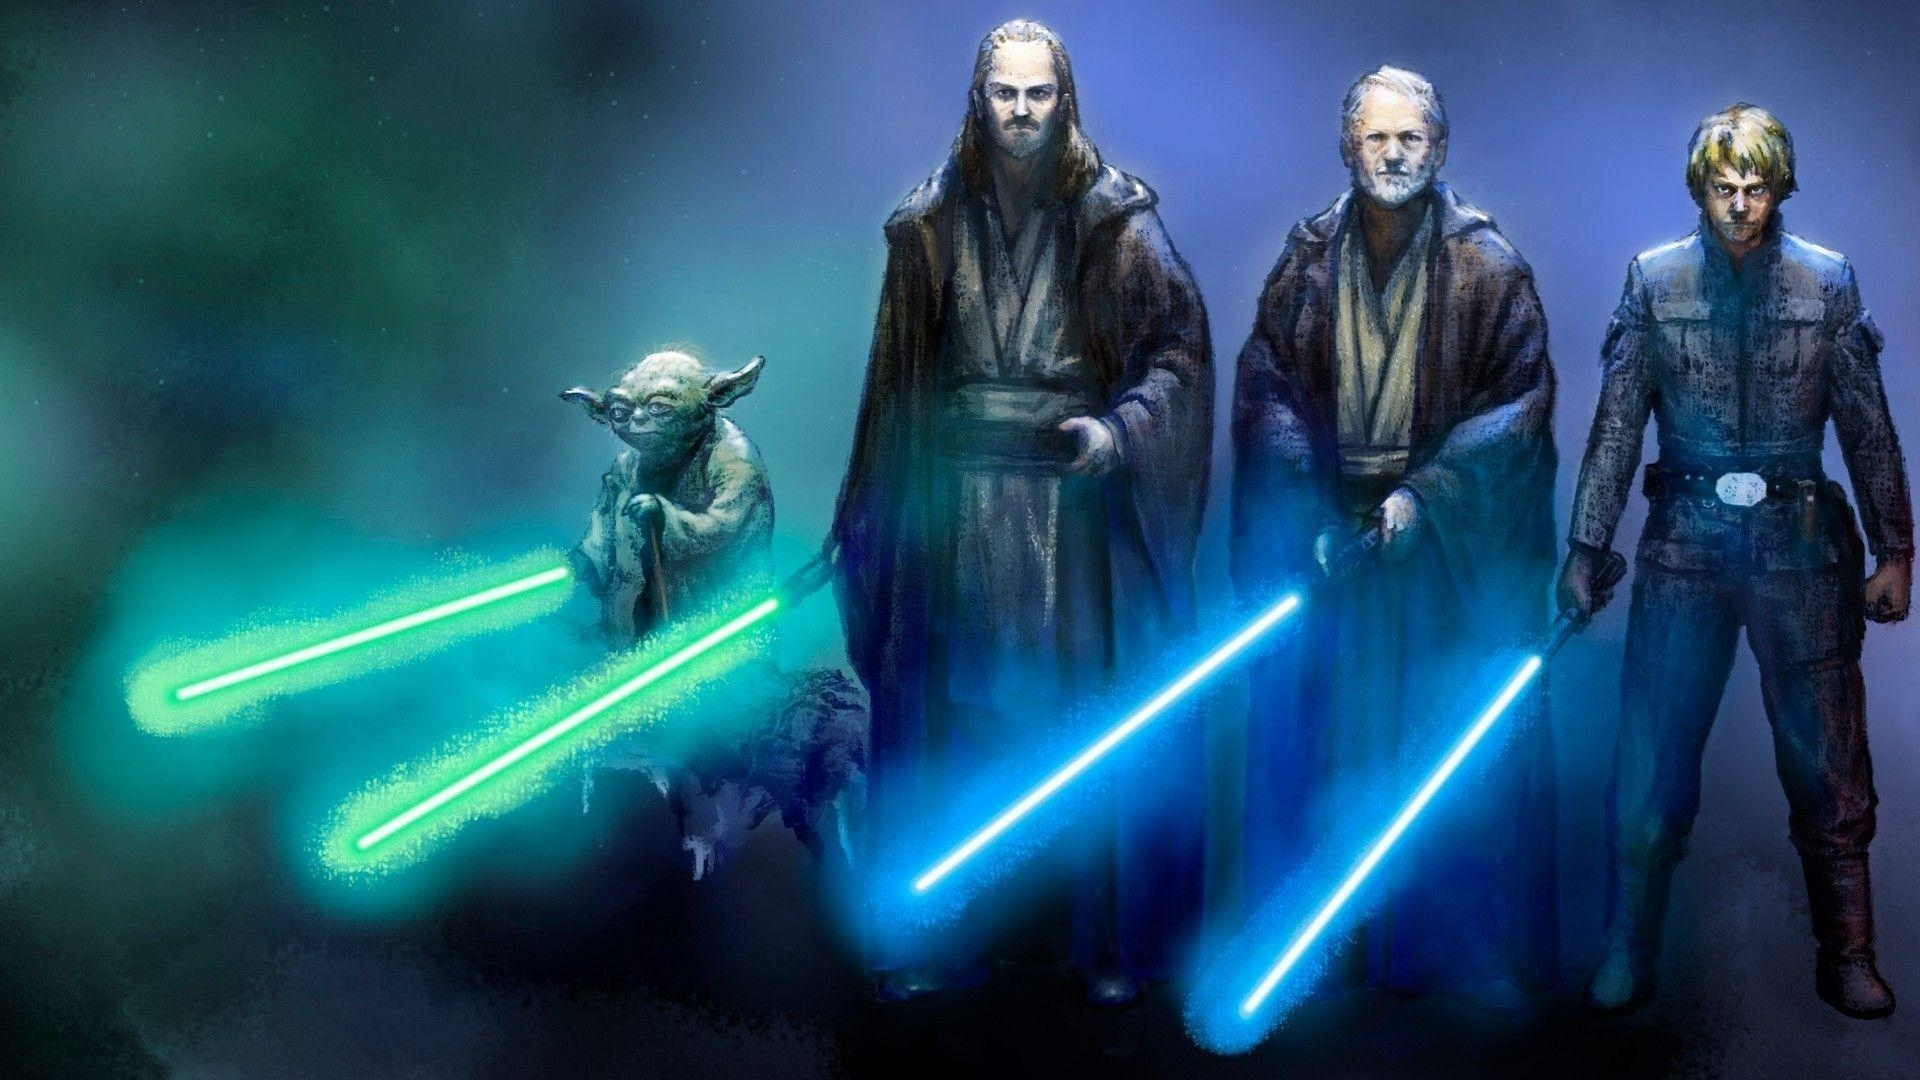 10 top star wars jedi wallpaper full hd 1080p for pc desktop 2018